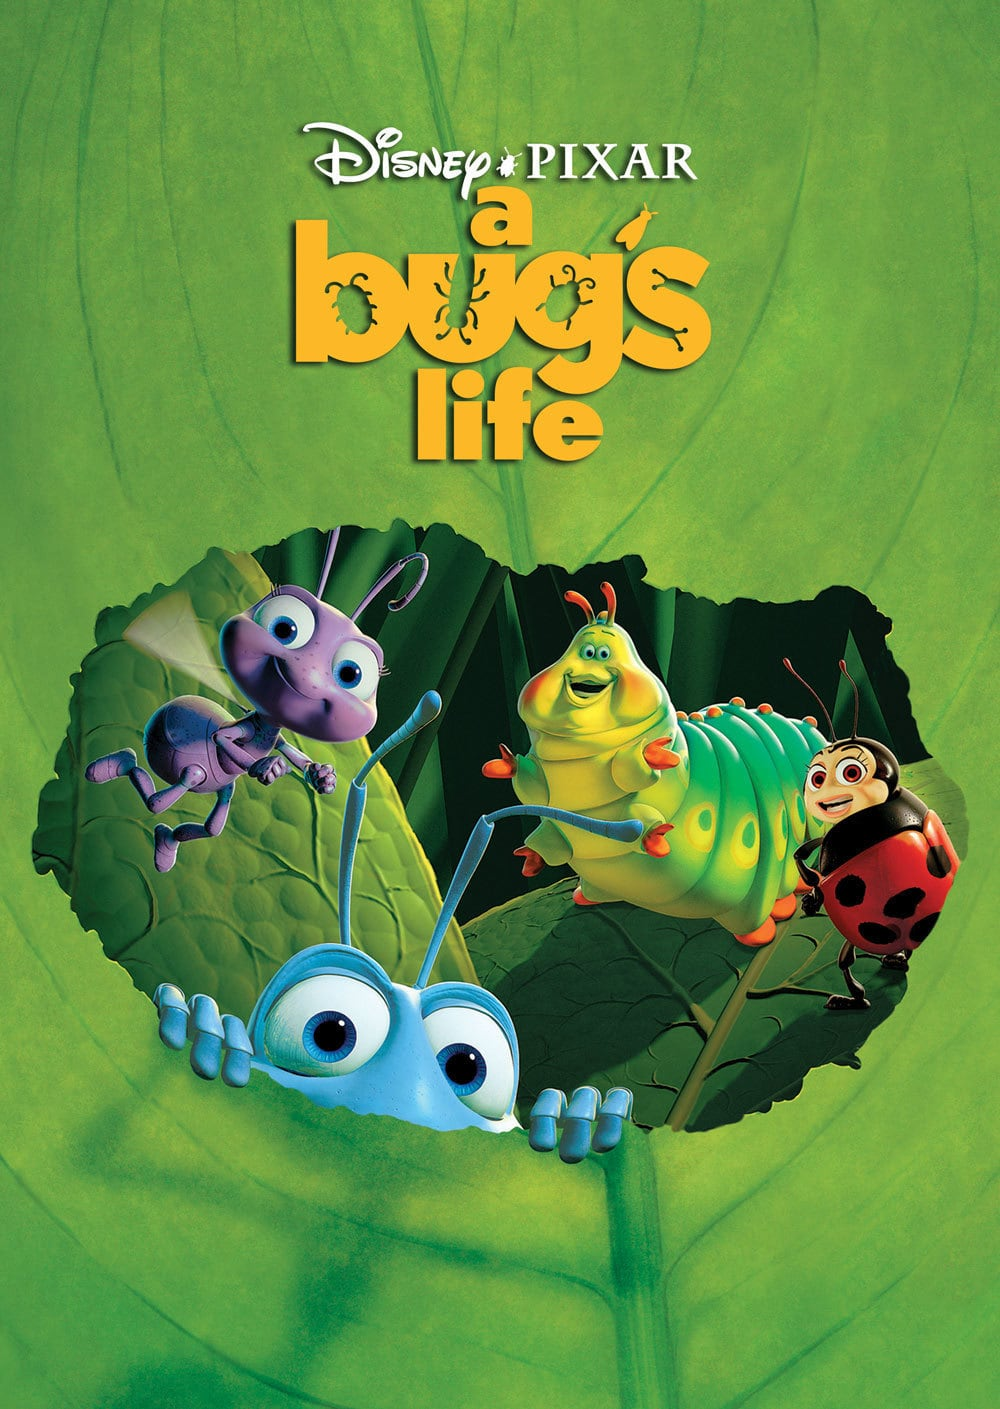 A Bug's Life (1998) - Directed by: John LasseterStarring: Dave Foley, Kevin Spacey, Julia Louis-Dreyfus, Hayden Panettiere, Richard Kind, Denis Leary, John RatzenbergerRated: GRunning Time: 1 h 35 mTMM Score: 4.5 stars out of 5STRENGTHS: Themes, Humor, Originality, Story, World Building, CharactersWEAKNESSES: -